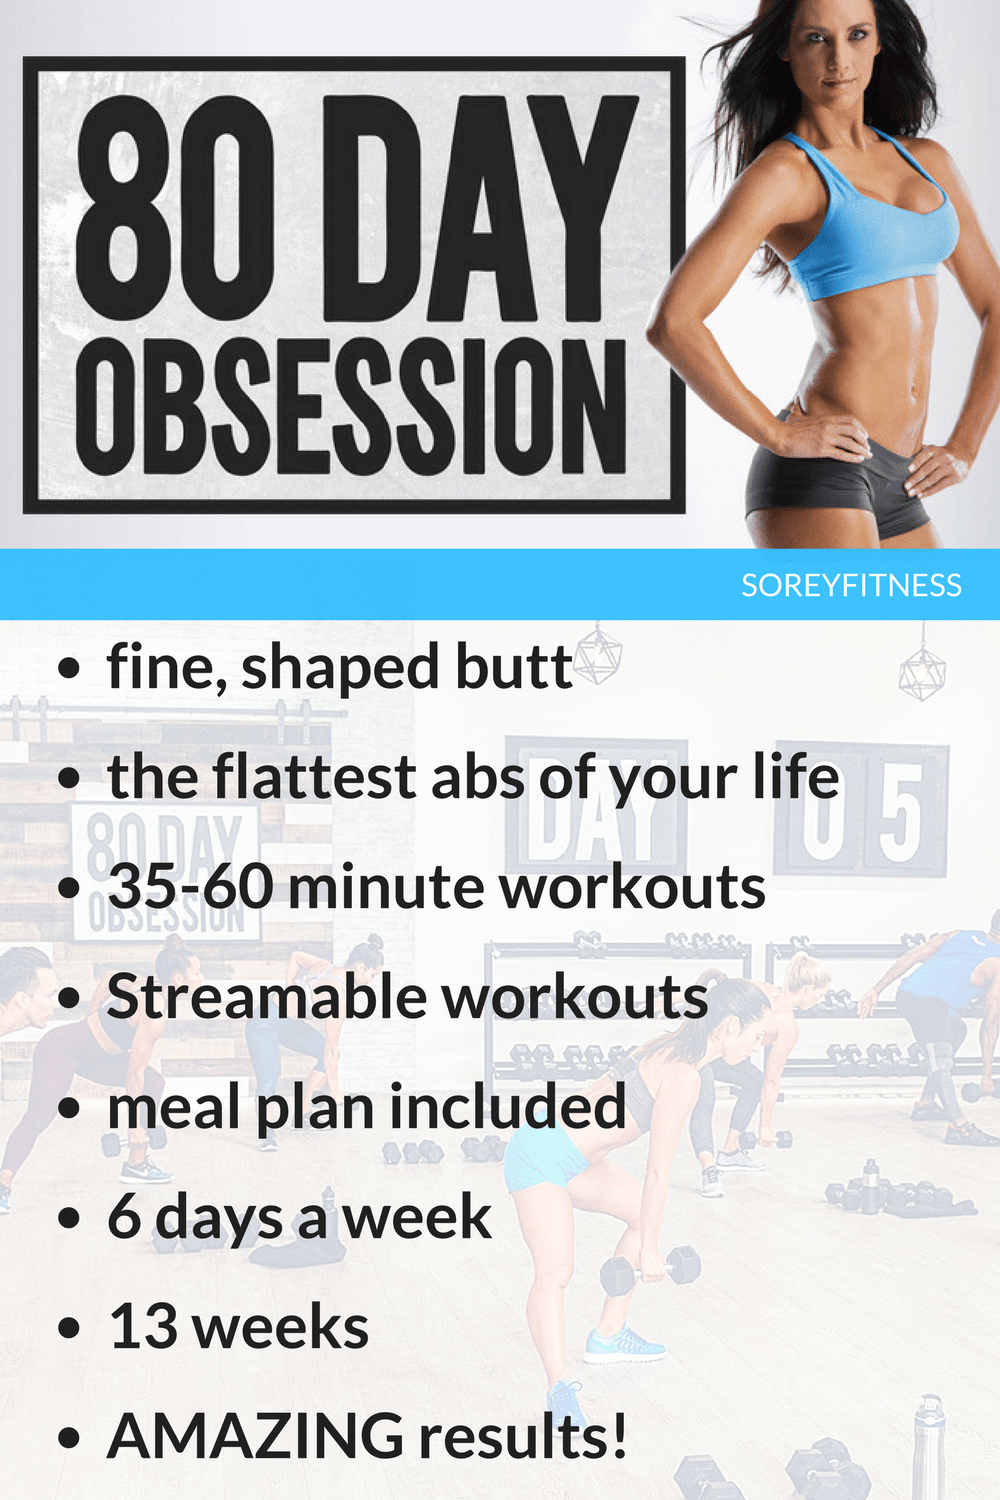 80 Day Obsession Review - Everything You Need to Know